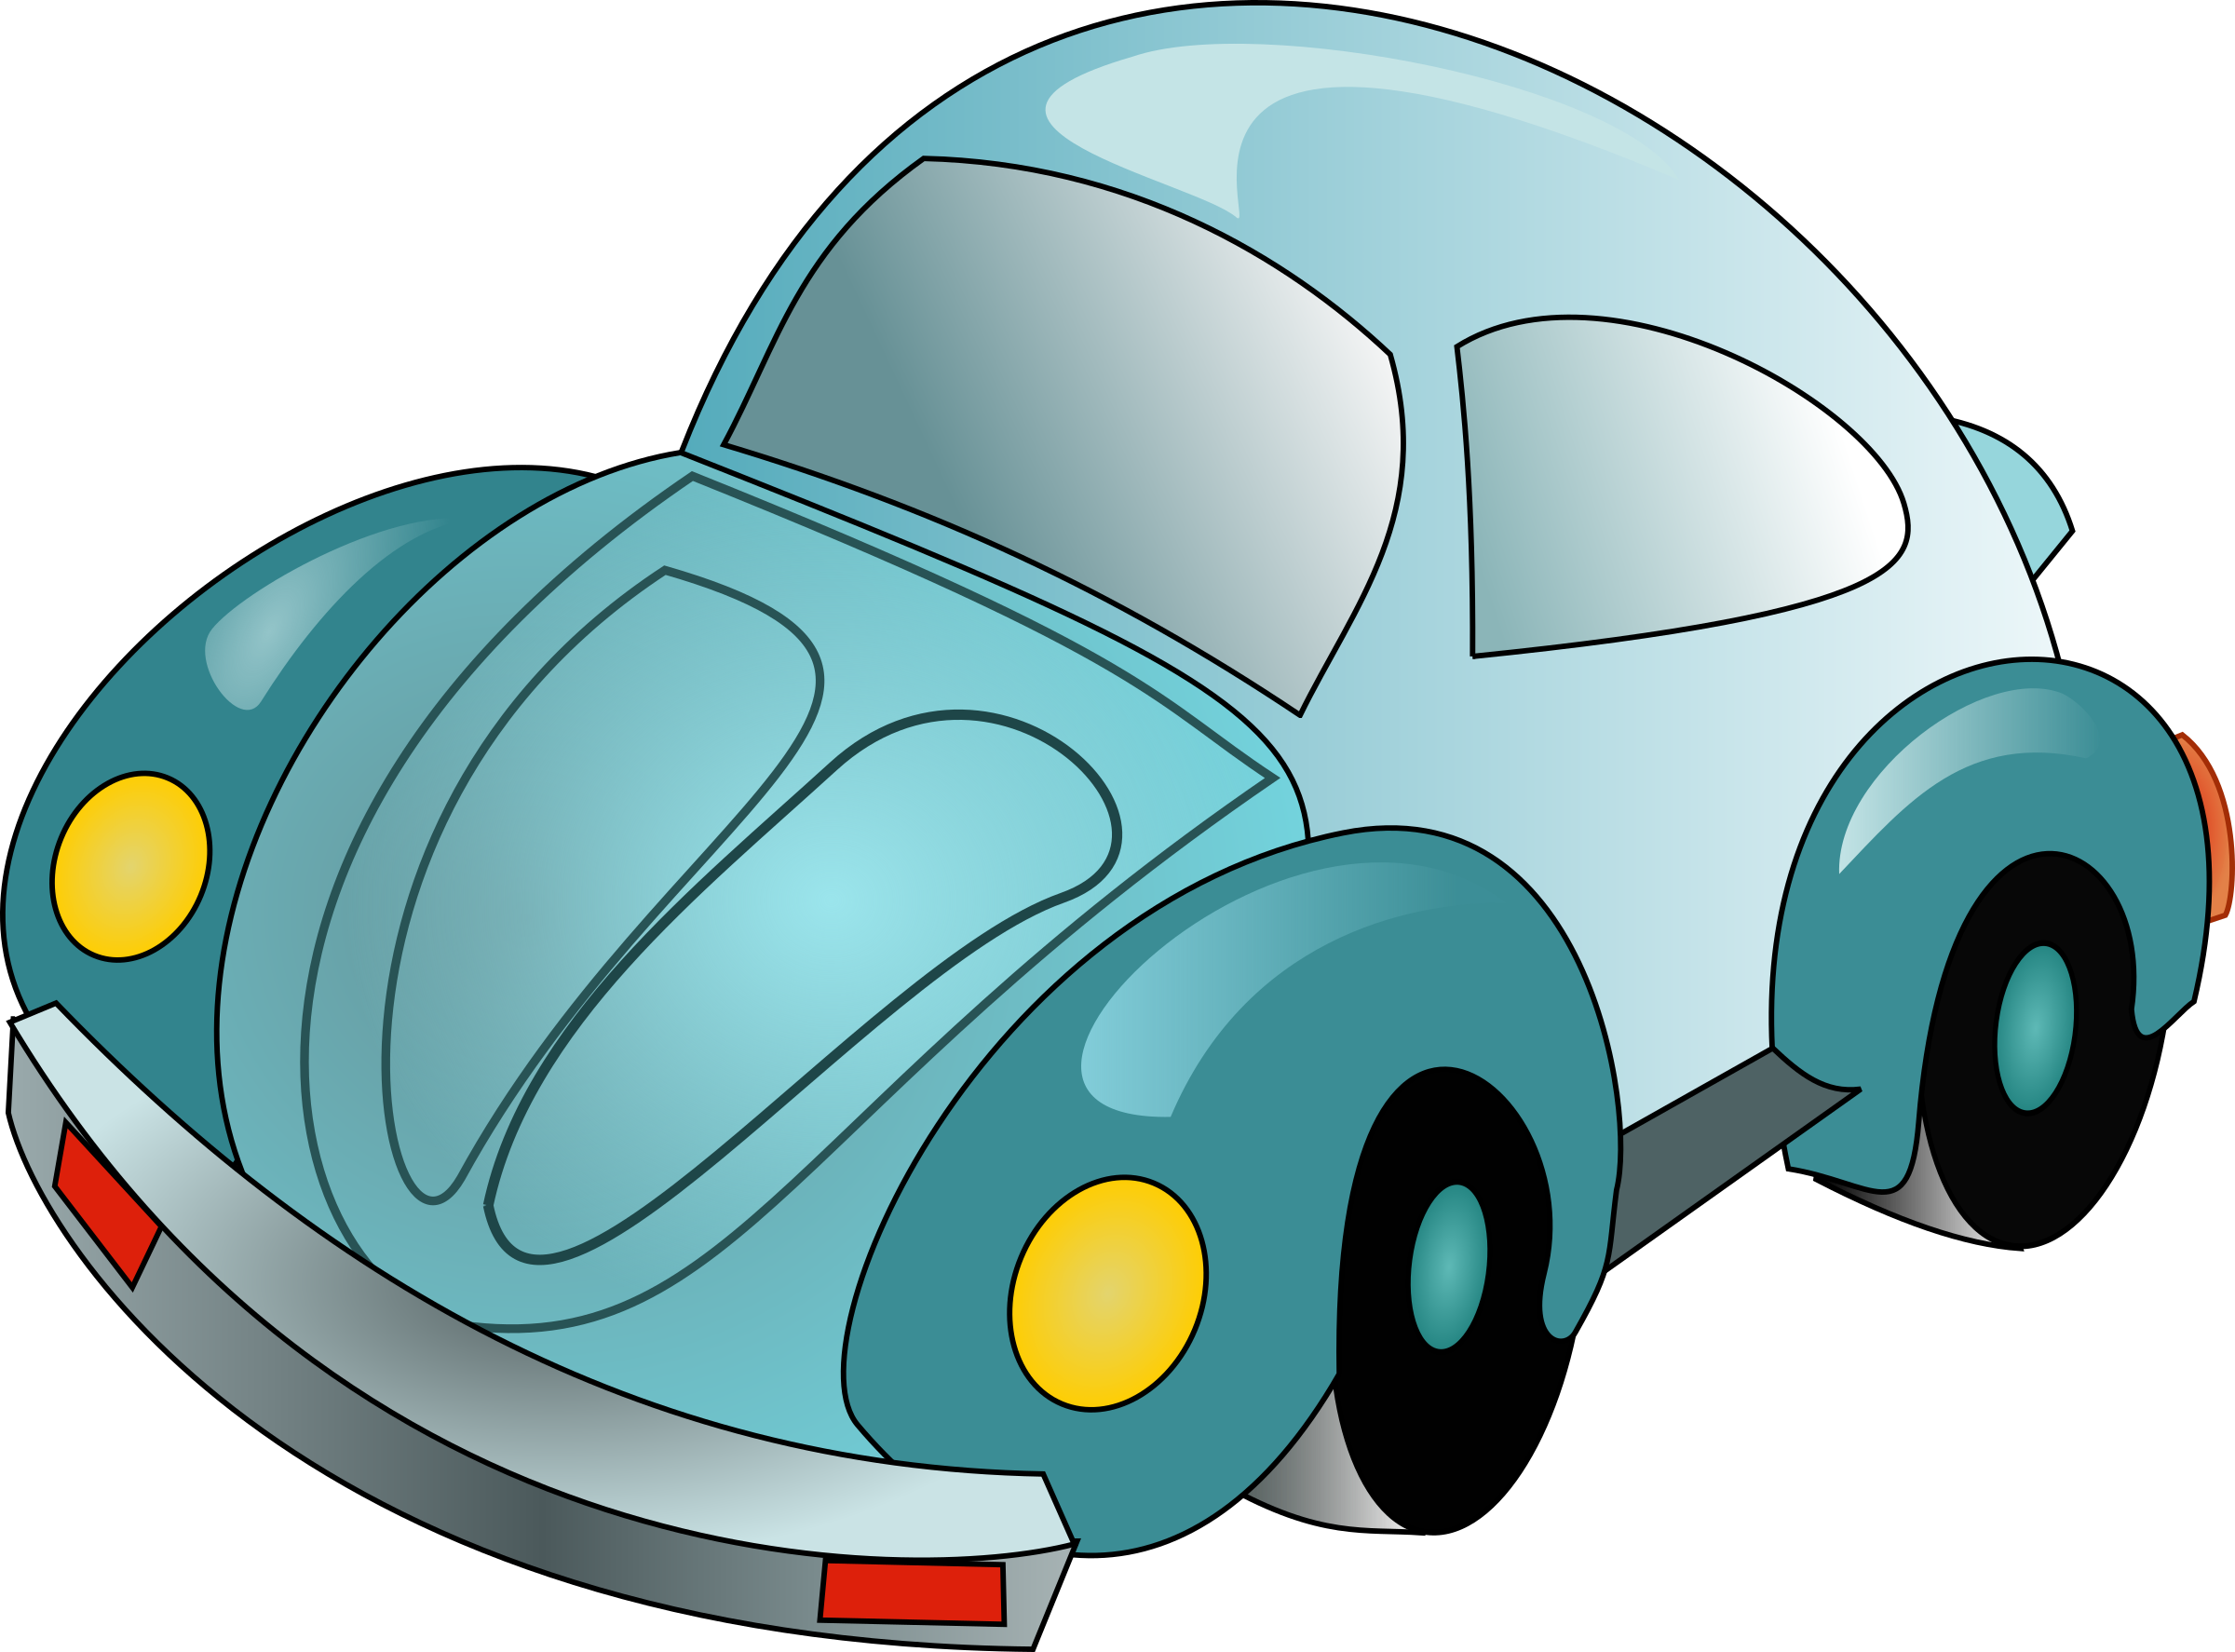 Car with hood open clipart clip art stock VW by @antroares, A volkwagen beetle car, on @openclipart | clipart ... clip art stock